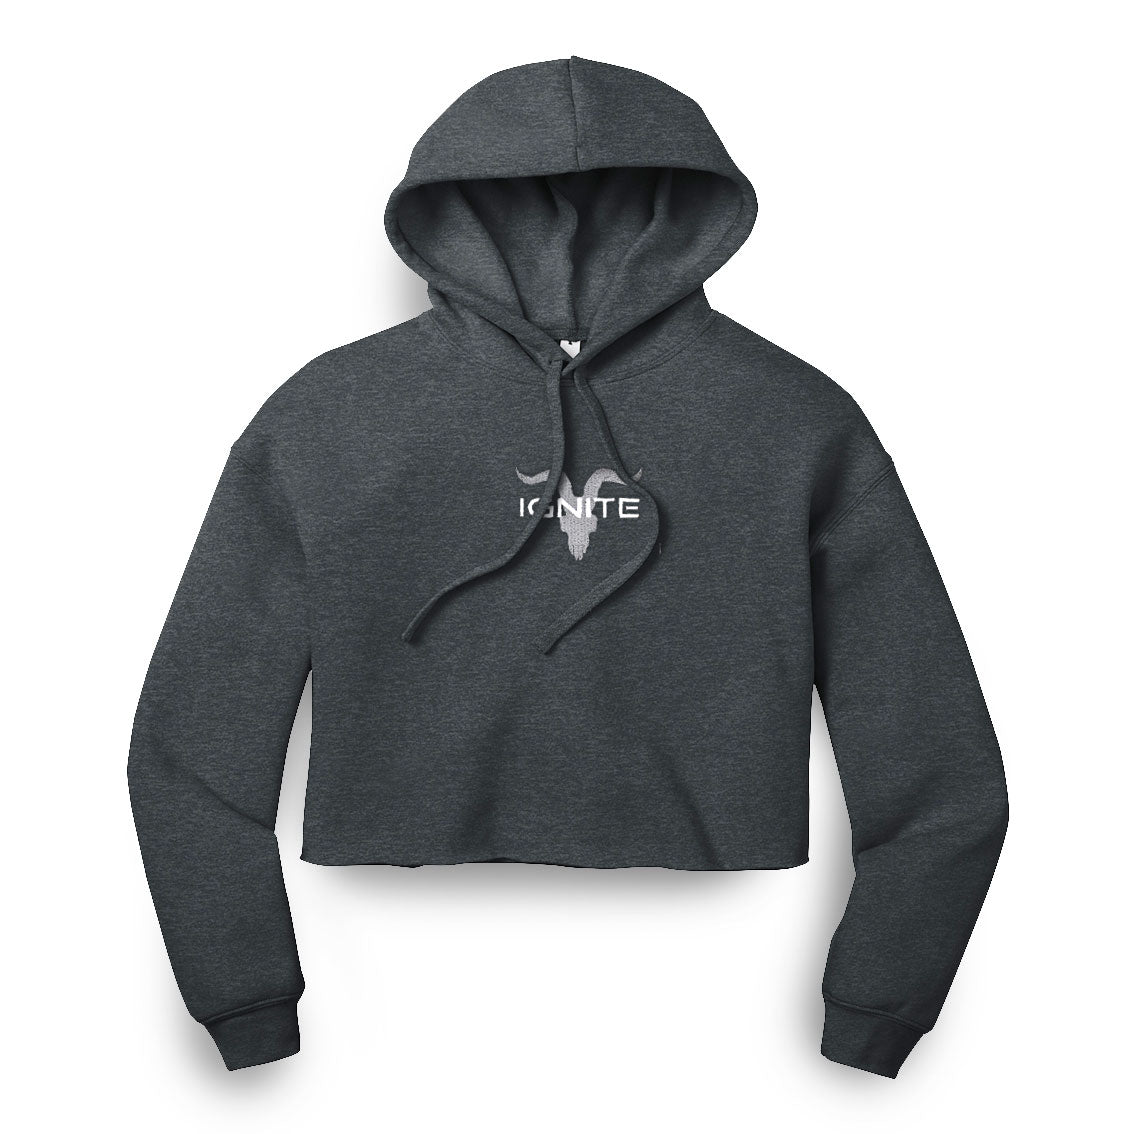 Ignite Premium Collection Ladies Dark Heather Grey Cropped Hoodie